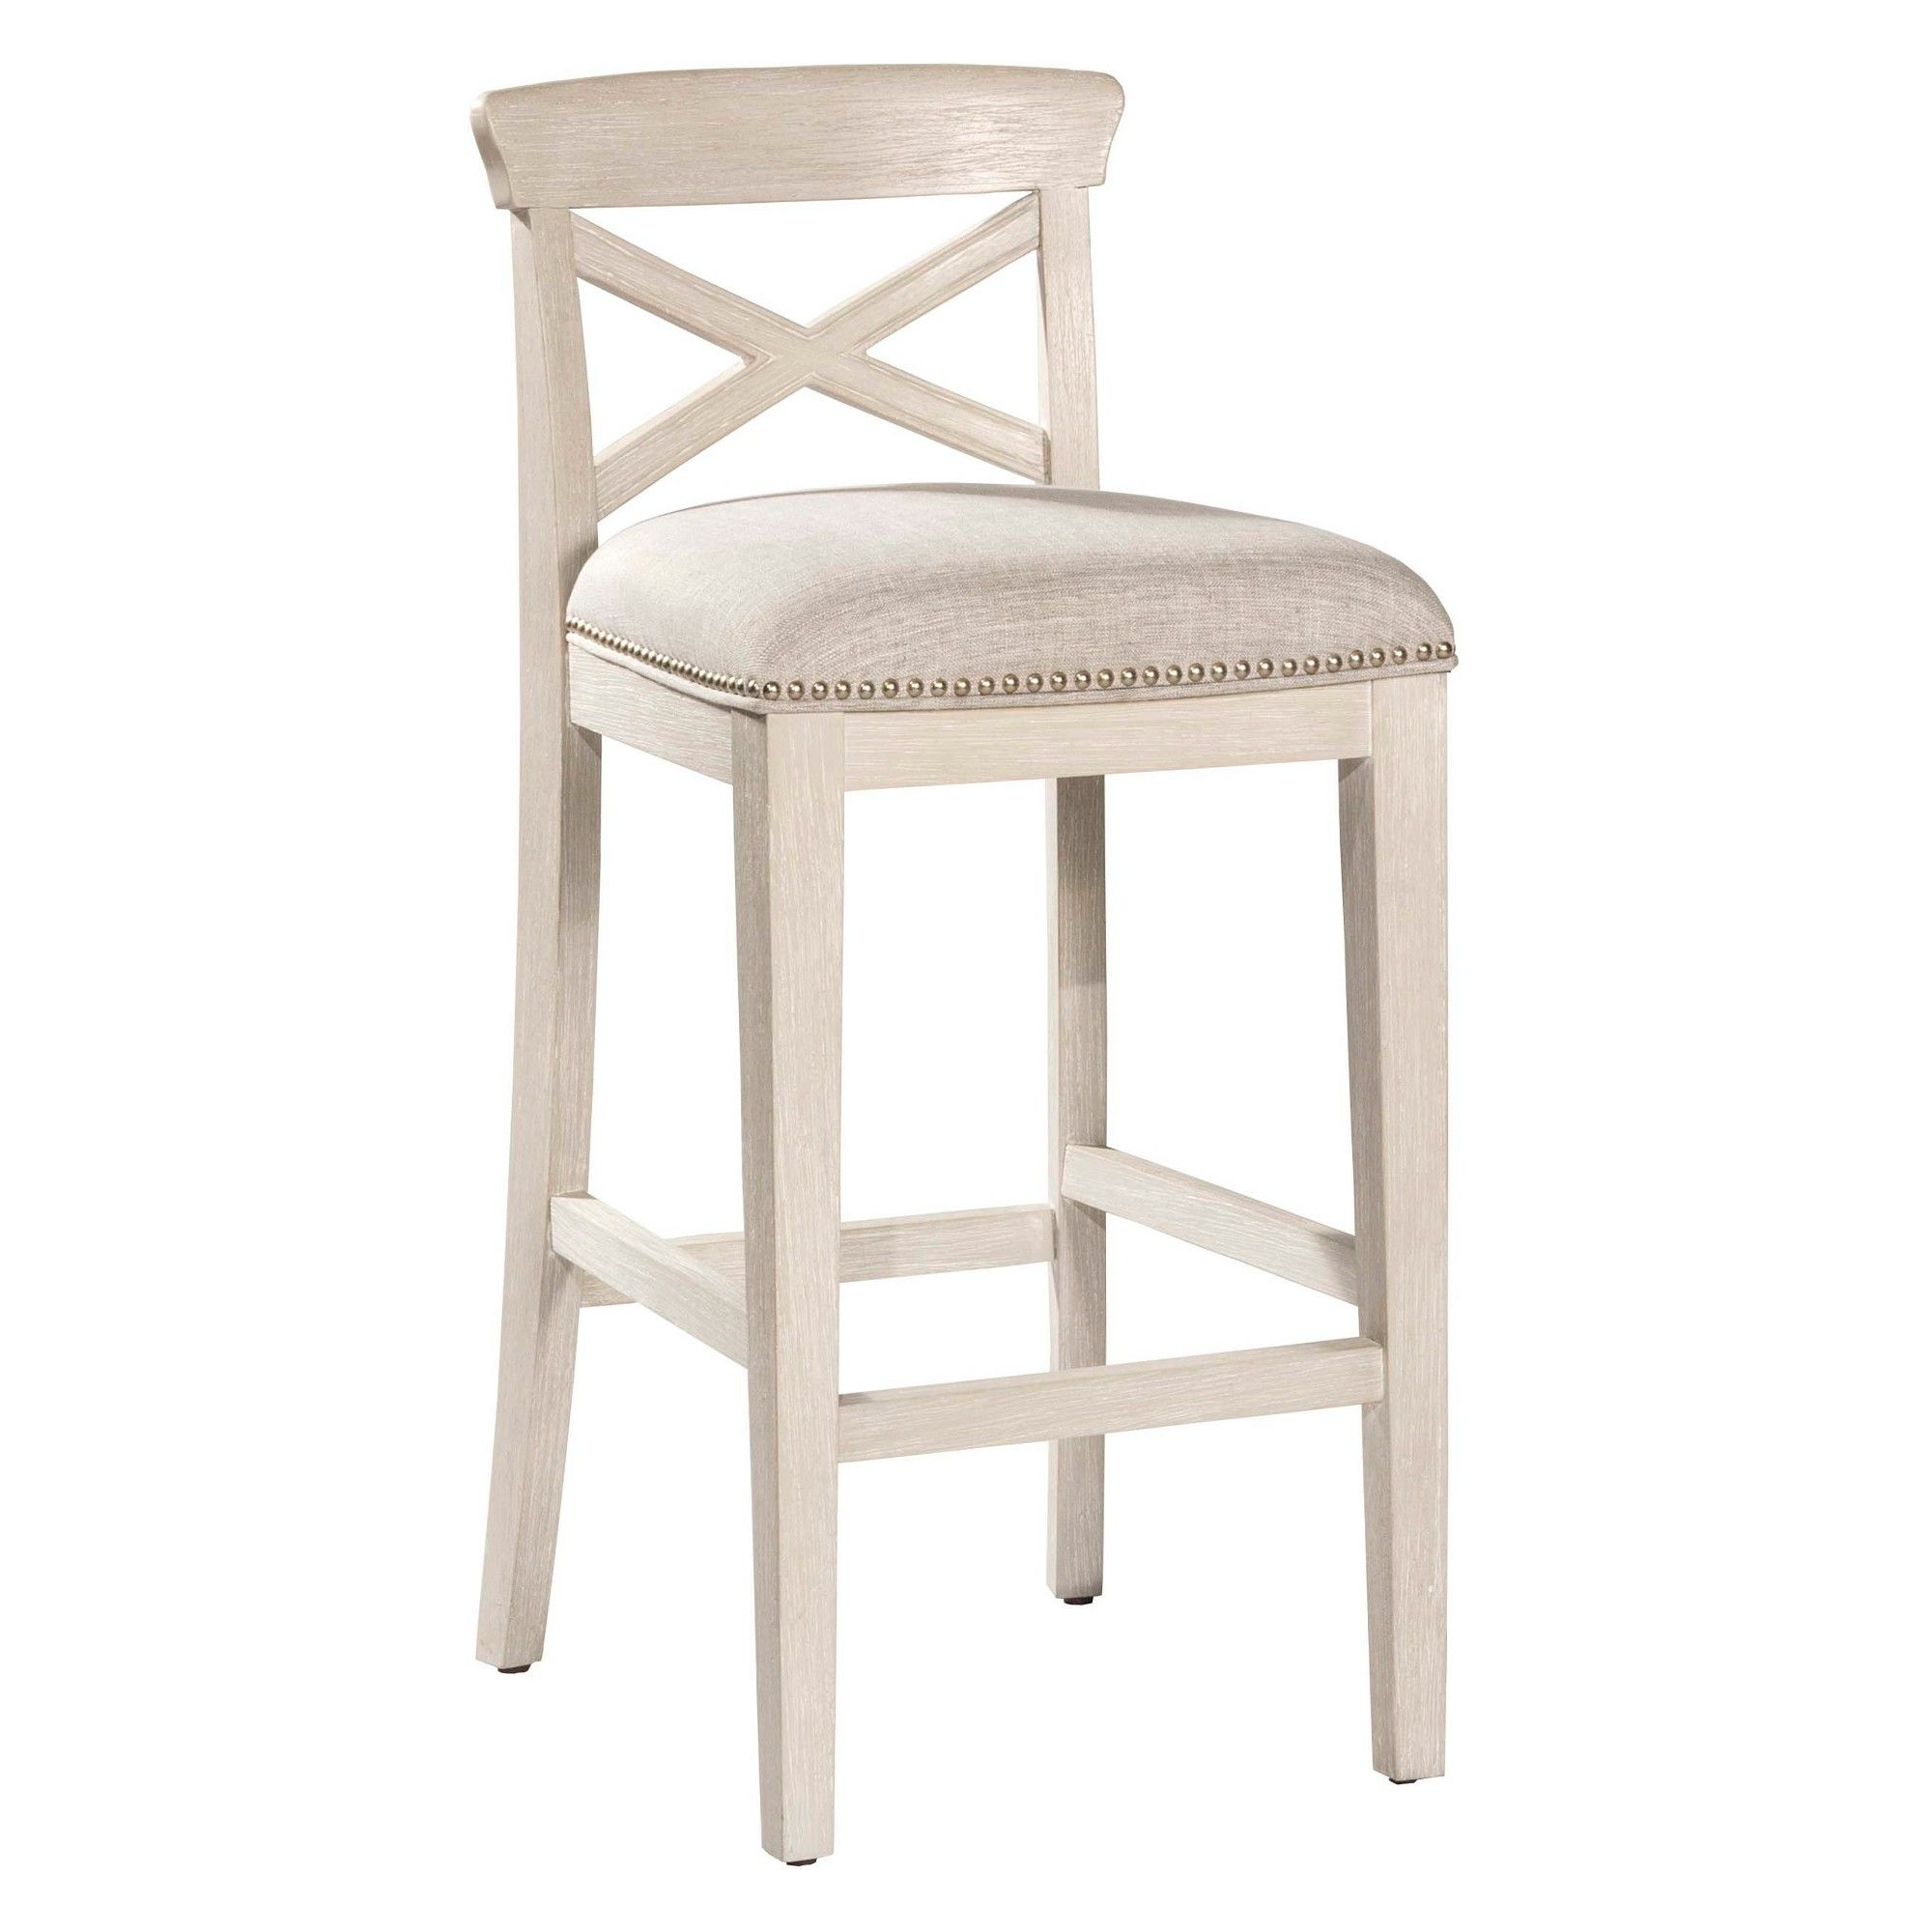 Phenomenal Bayview 30 Nonswivel Bar Stool Set Of 2 White Silver Squirreltailoven Fun Painted Chair Ideas Images Squirreltailovenorg